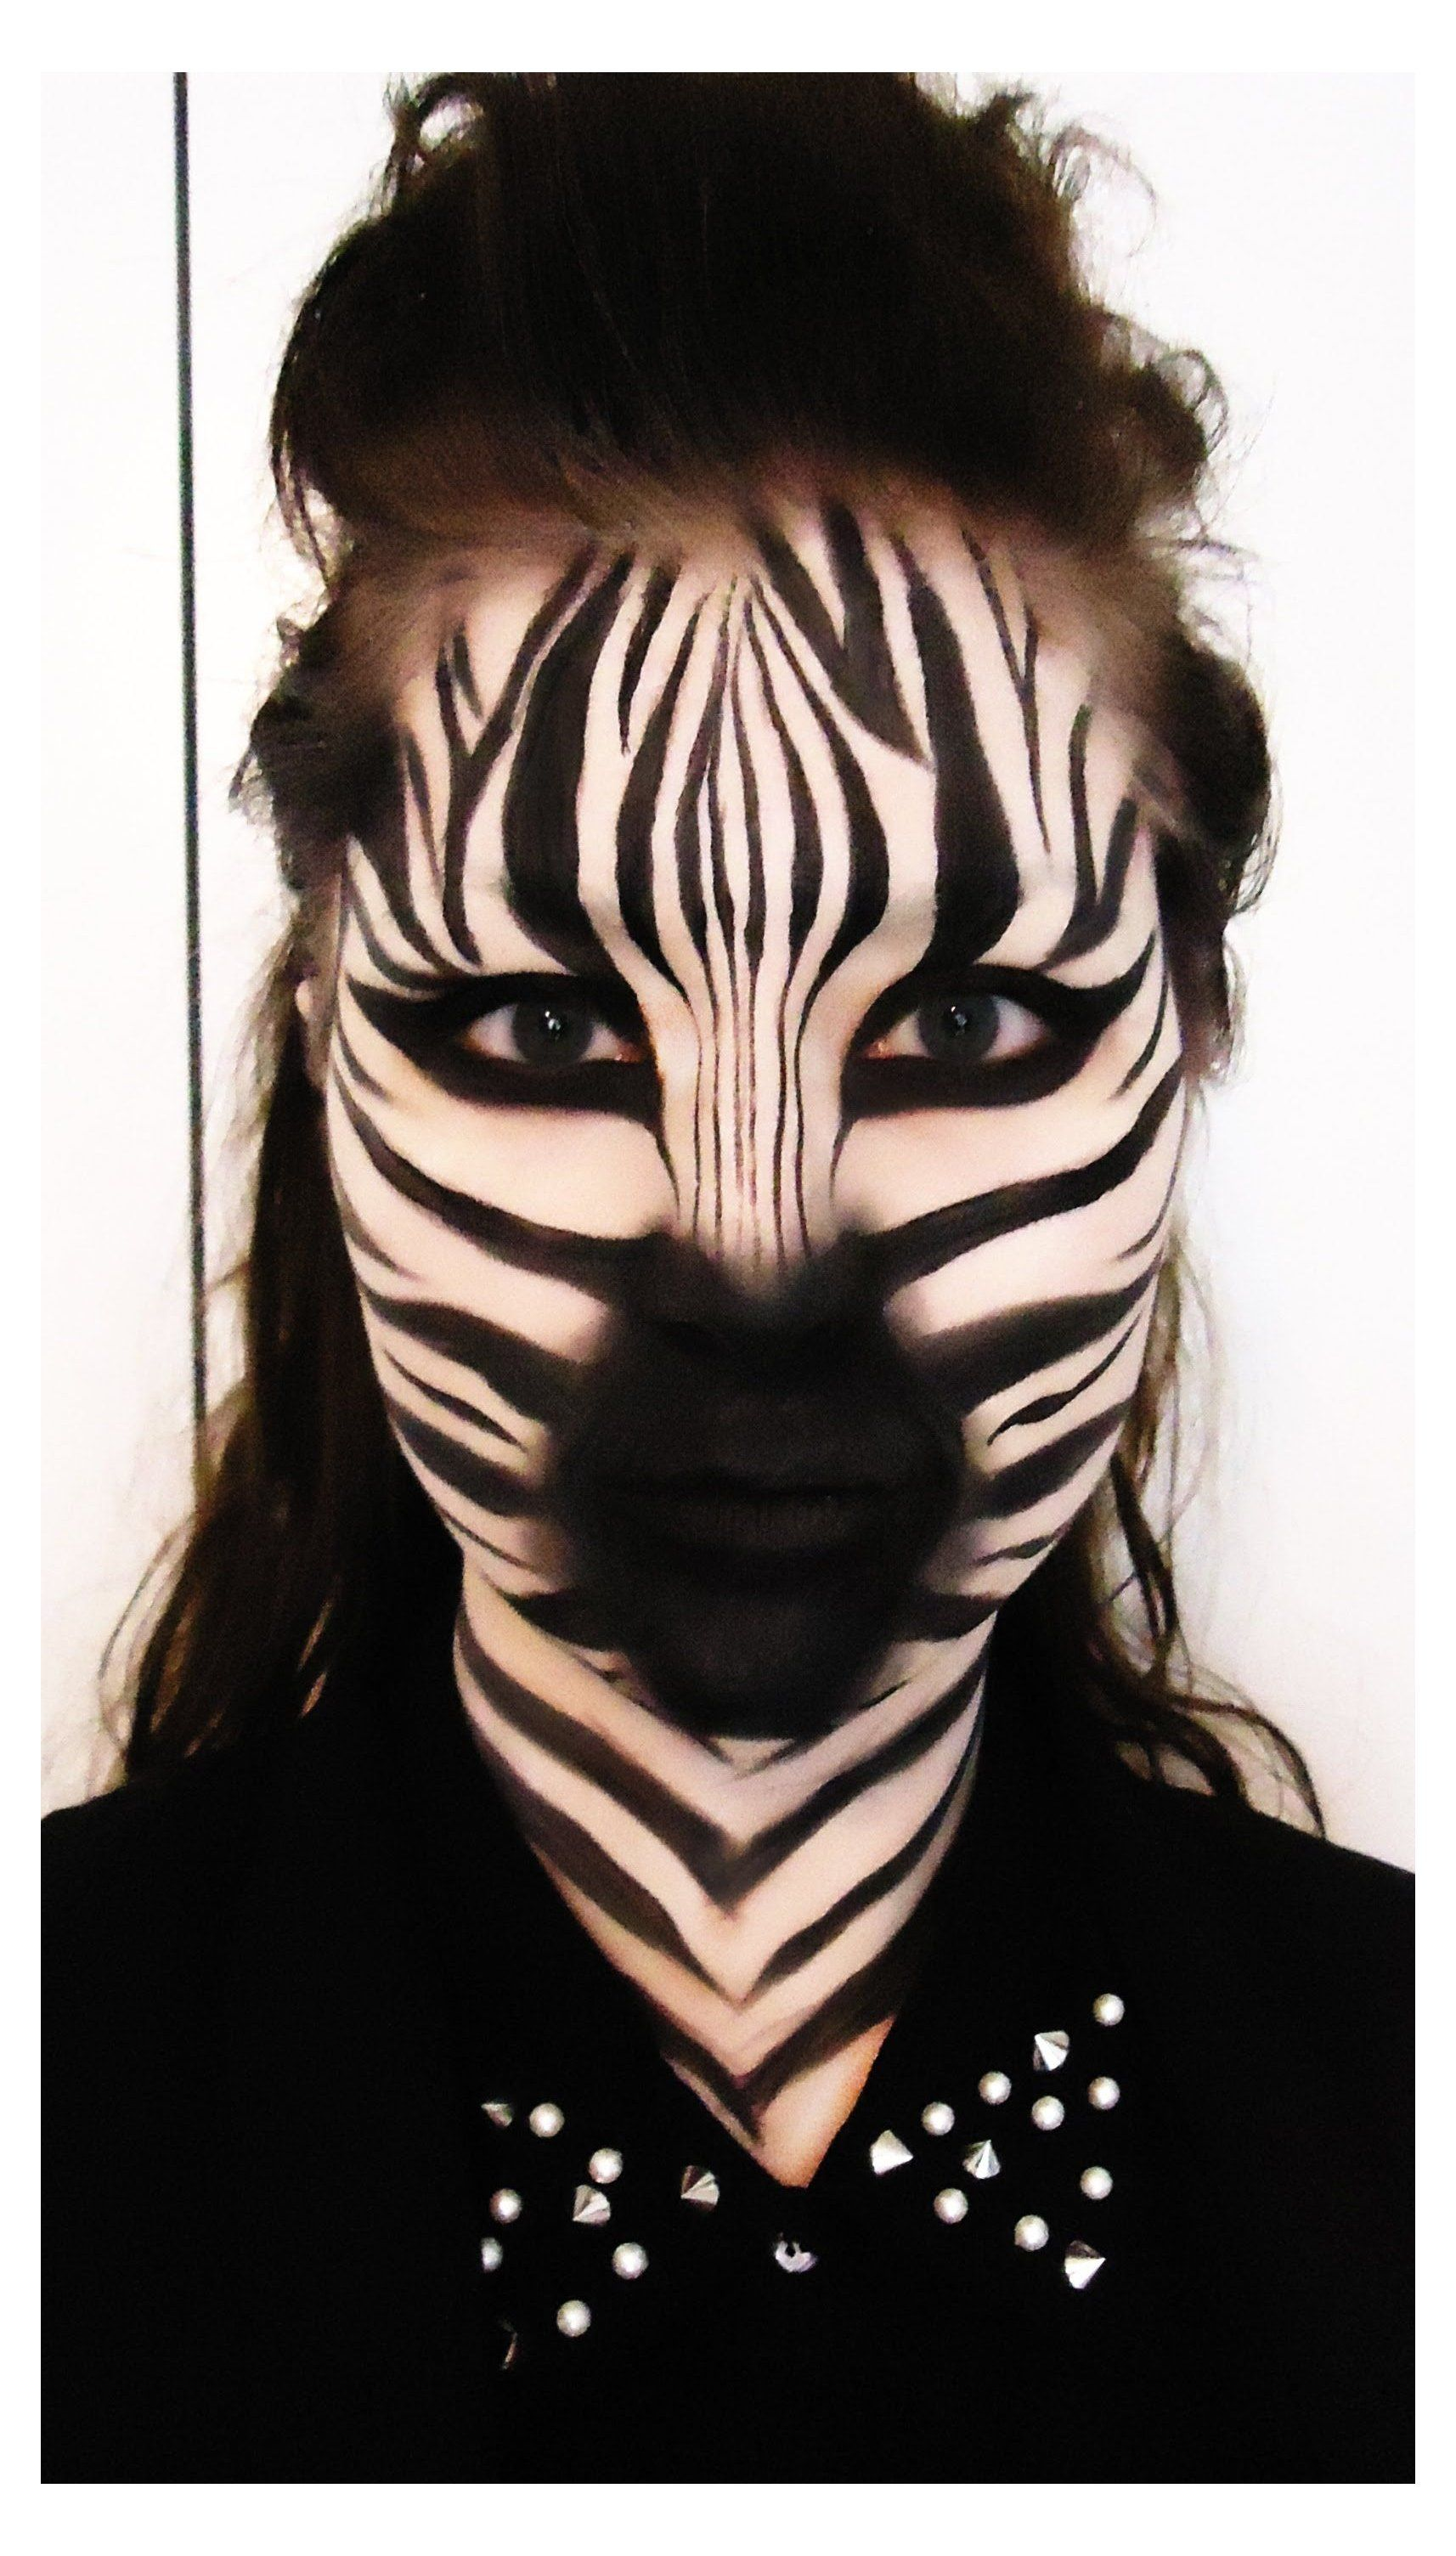 Zebra Makeup Tutorial Zebra Makeup Face Make Up Zebra Products Used Mac Pure White Chromacake 2020 Cadilar Bayrami Makyaji Hayvan Makyaji Kostum Makyaji